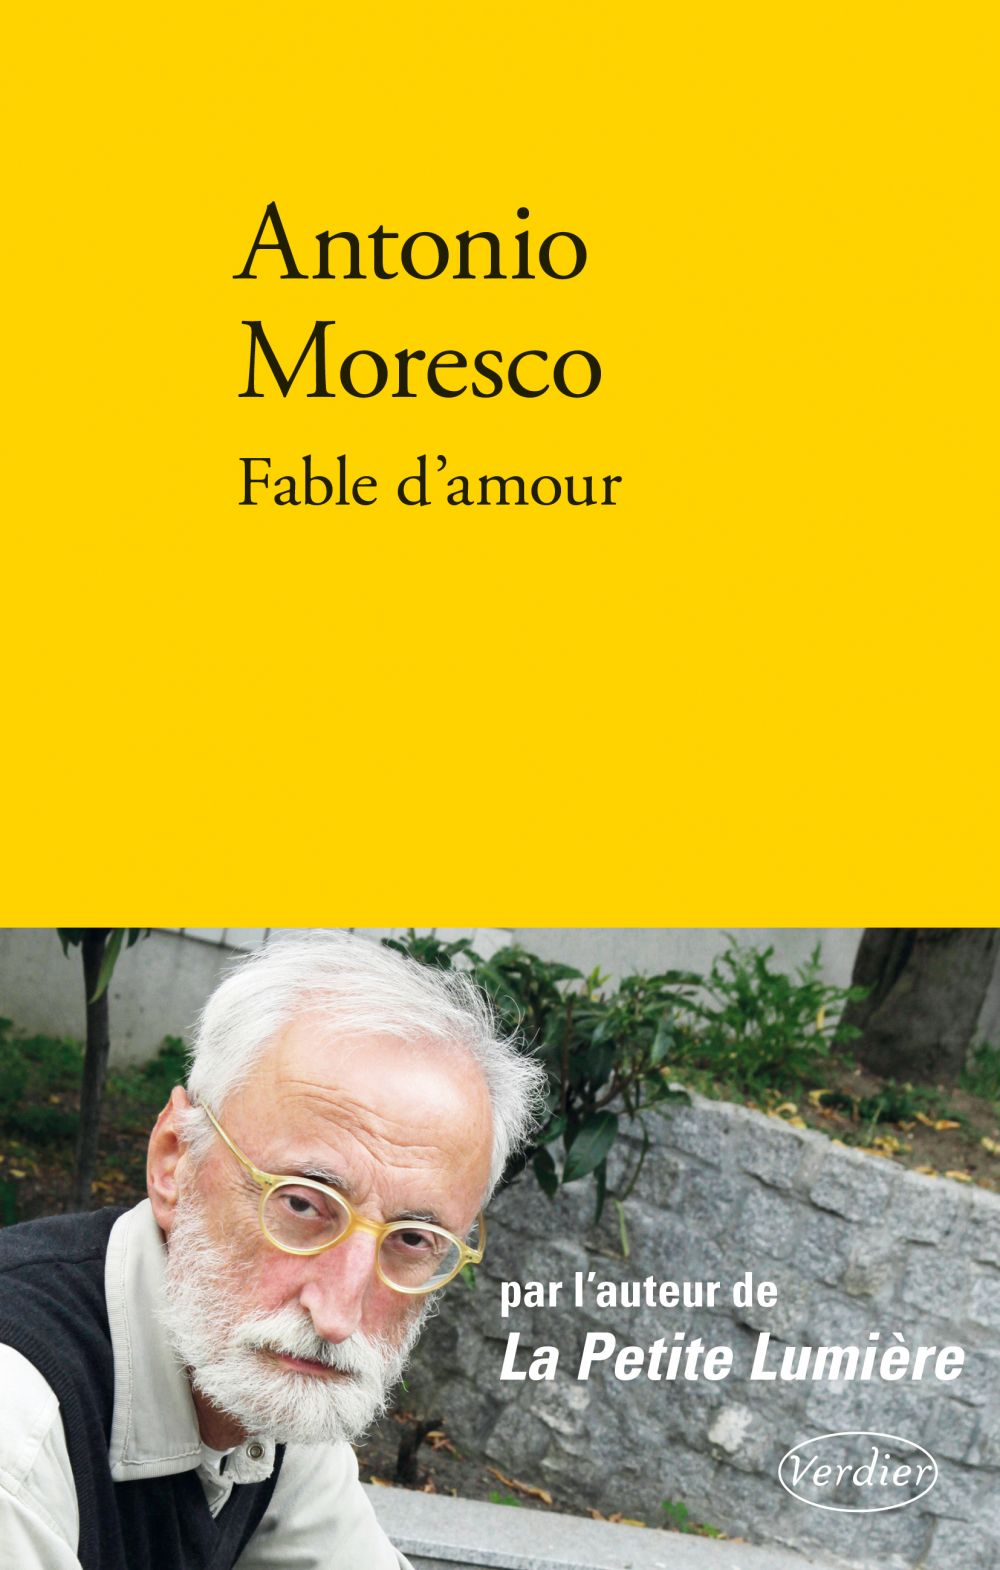 Fable d'amour